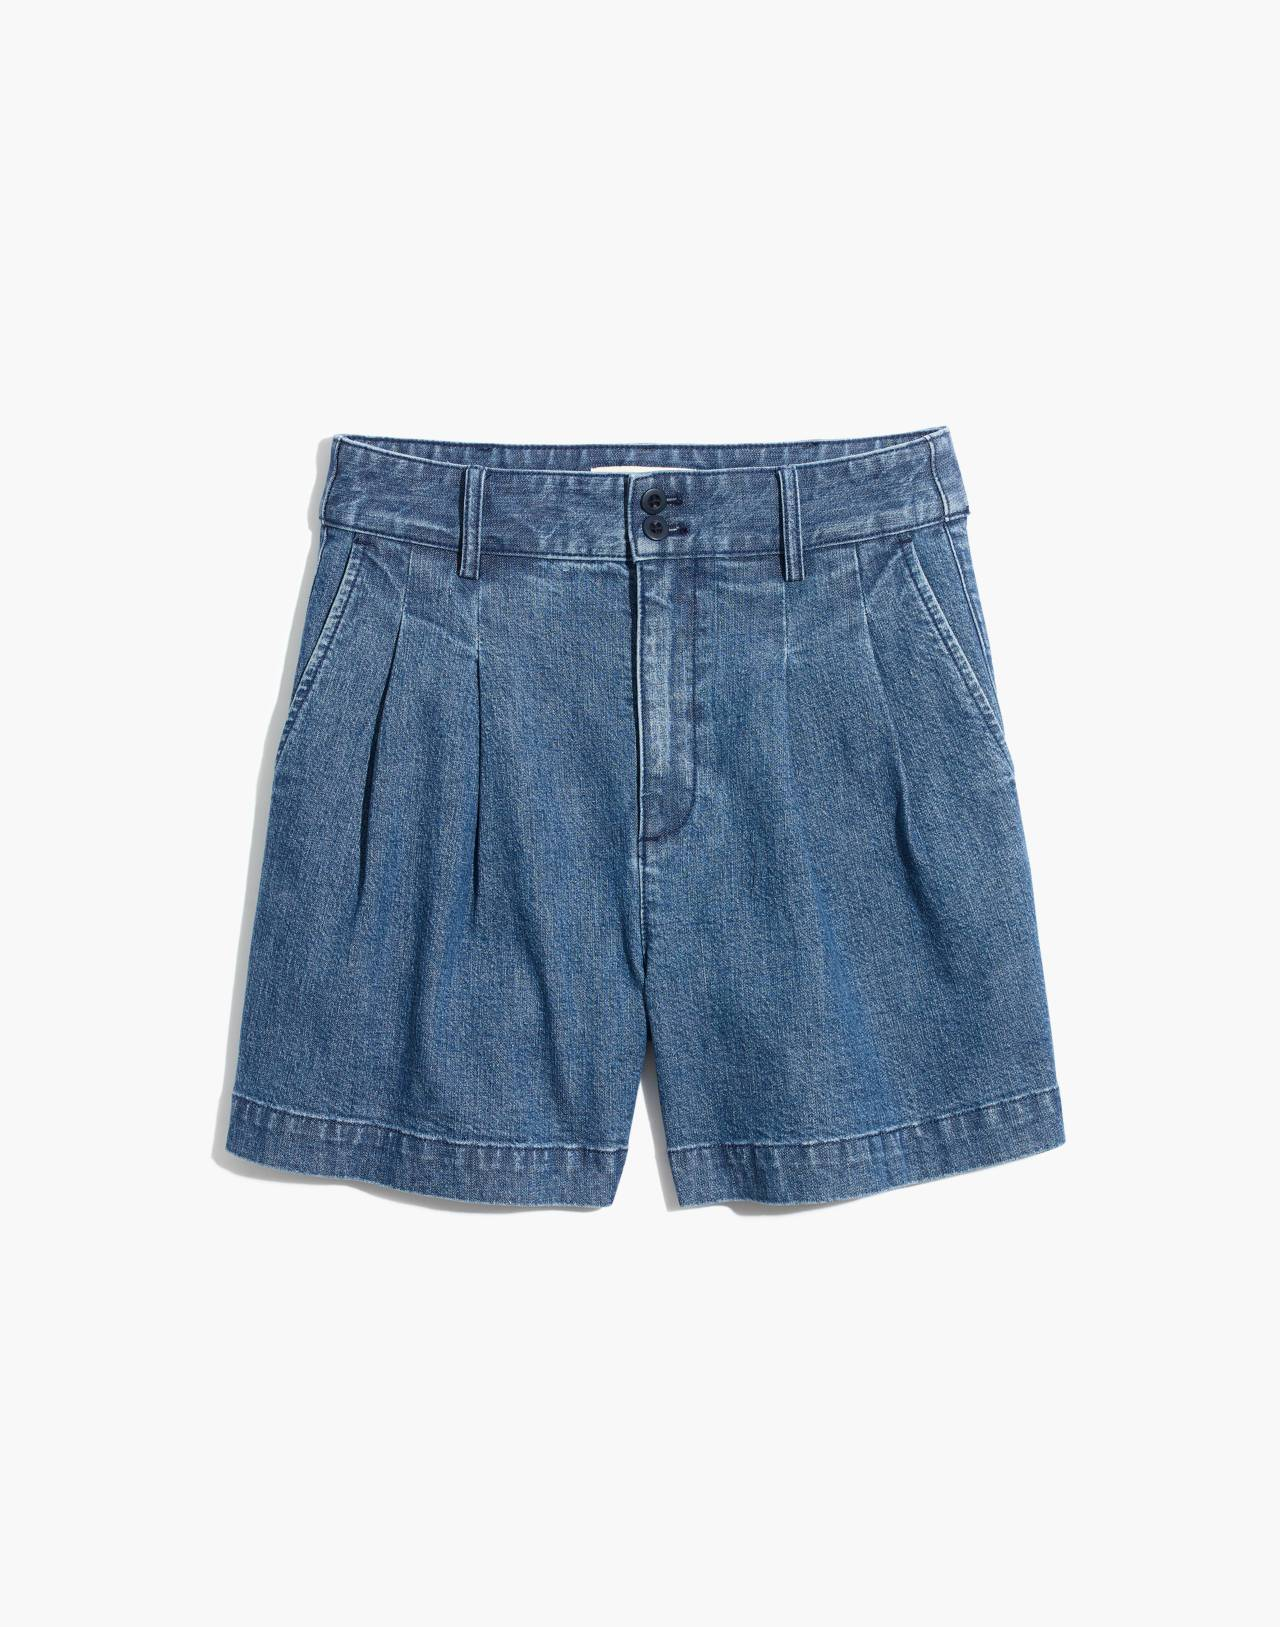 Denim Pleated Shorts in willowdale wash image 4